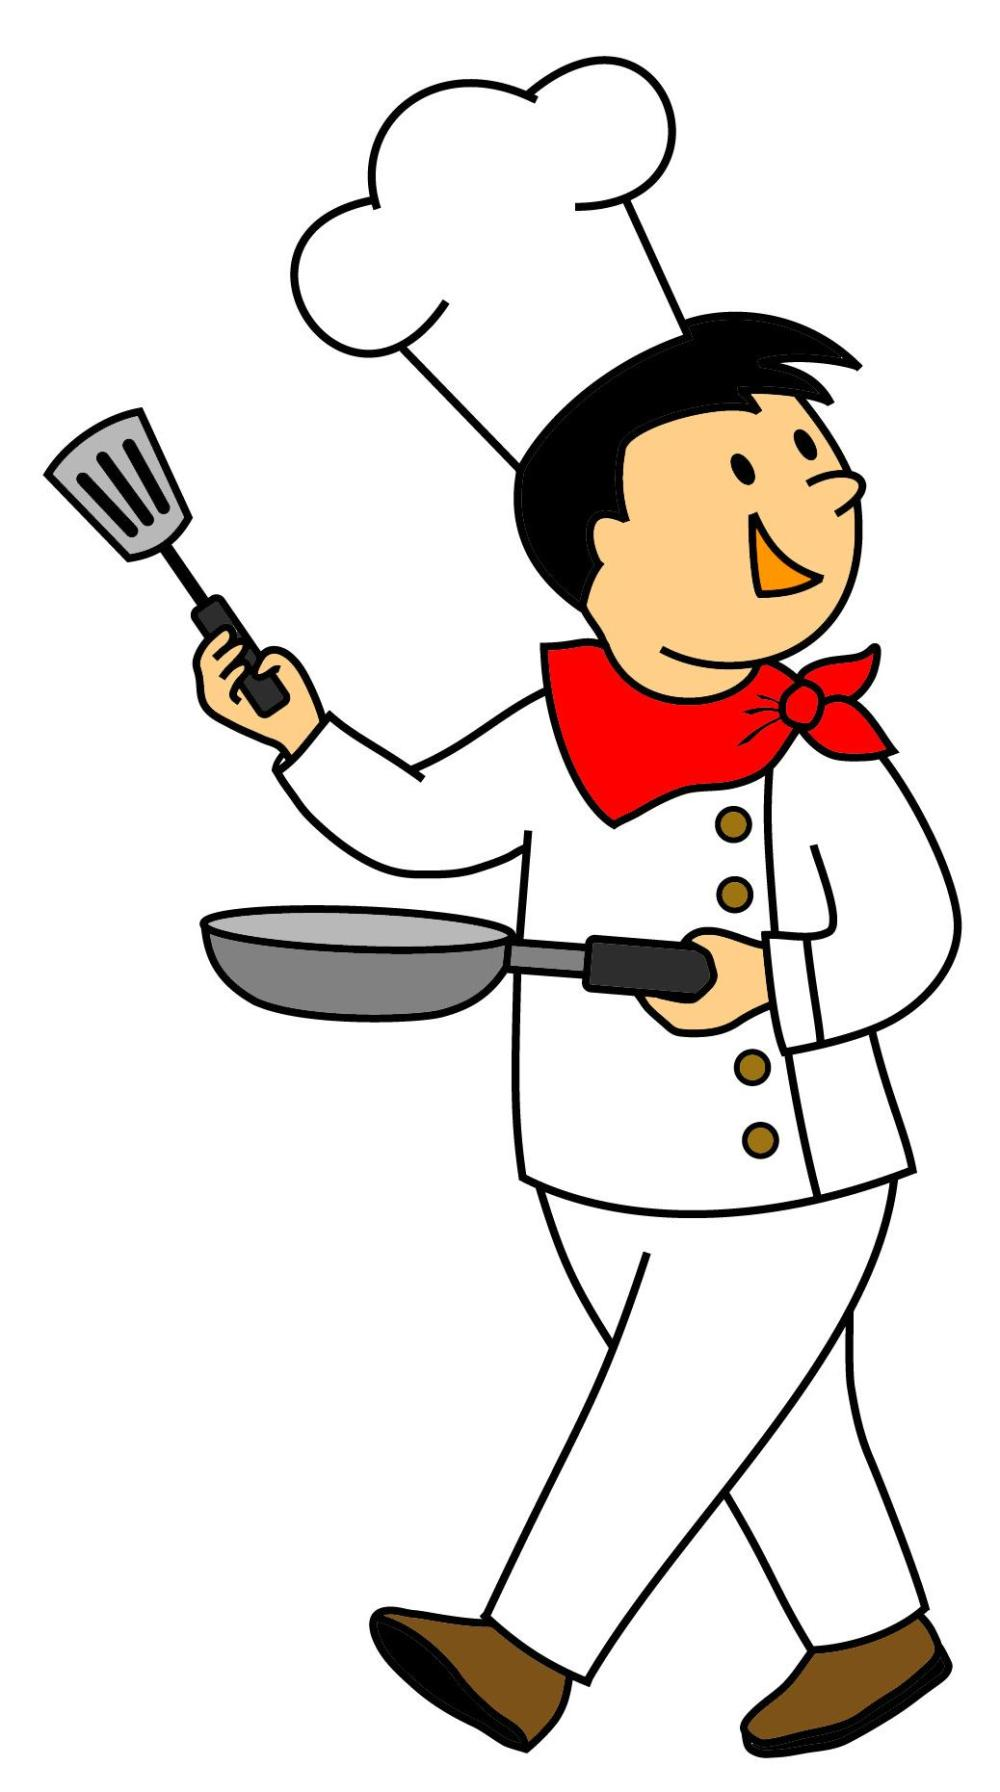 medium resolution of free chef clipart free download best free chef clipart chef hats clip art art cooking hat